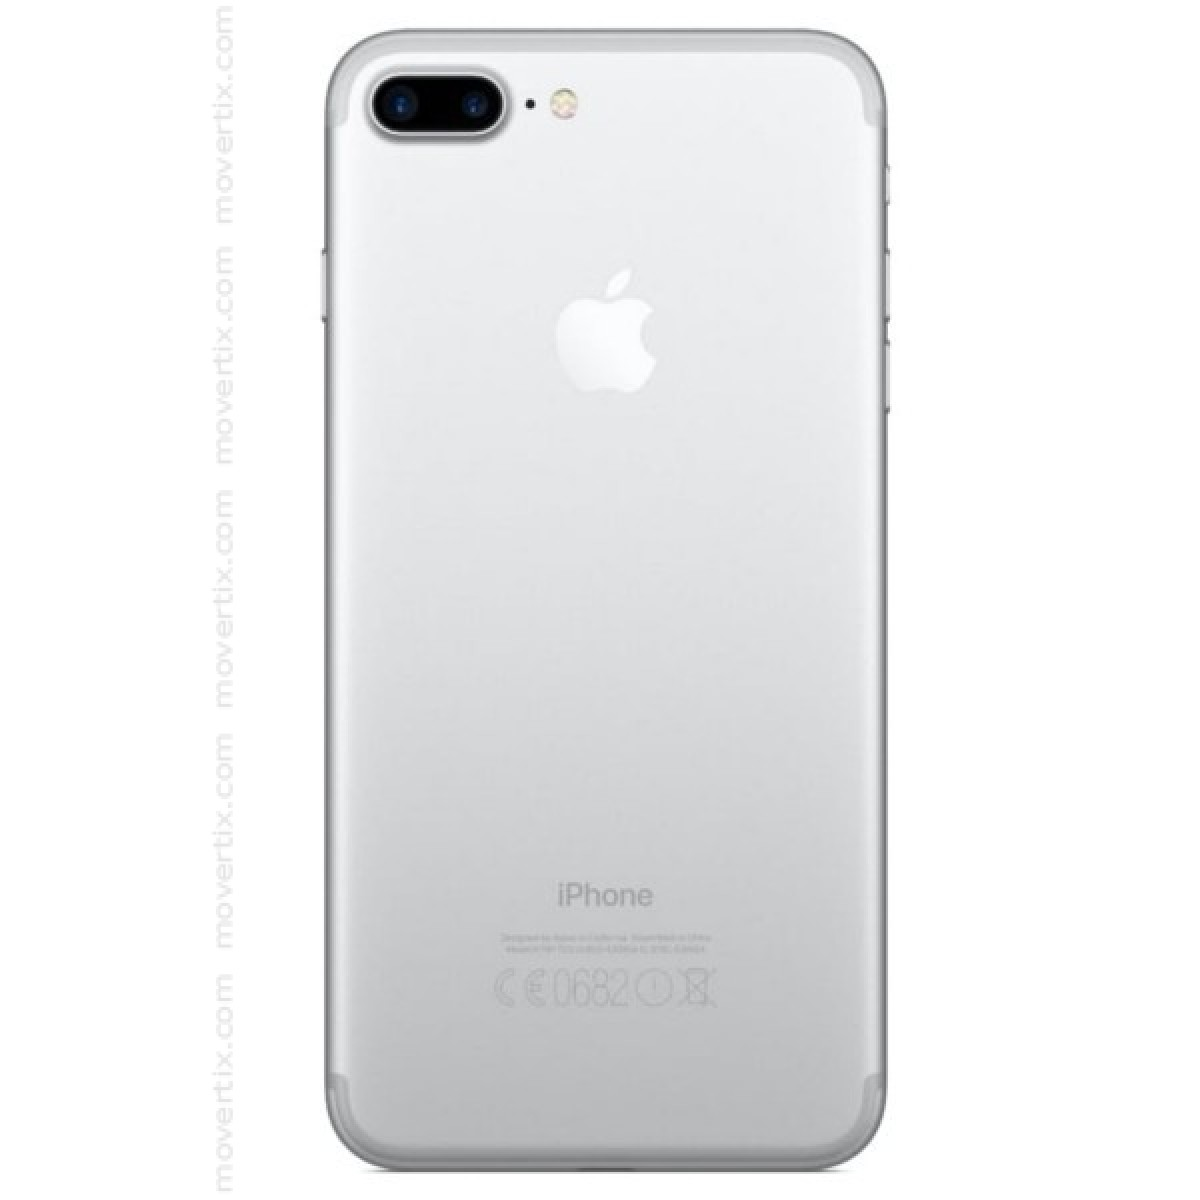 6aa8ad1d38e El iPhone 7 Plus de color plata de 32GB de memoria interna es más. Más  pantalla (5,5